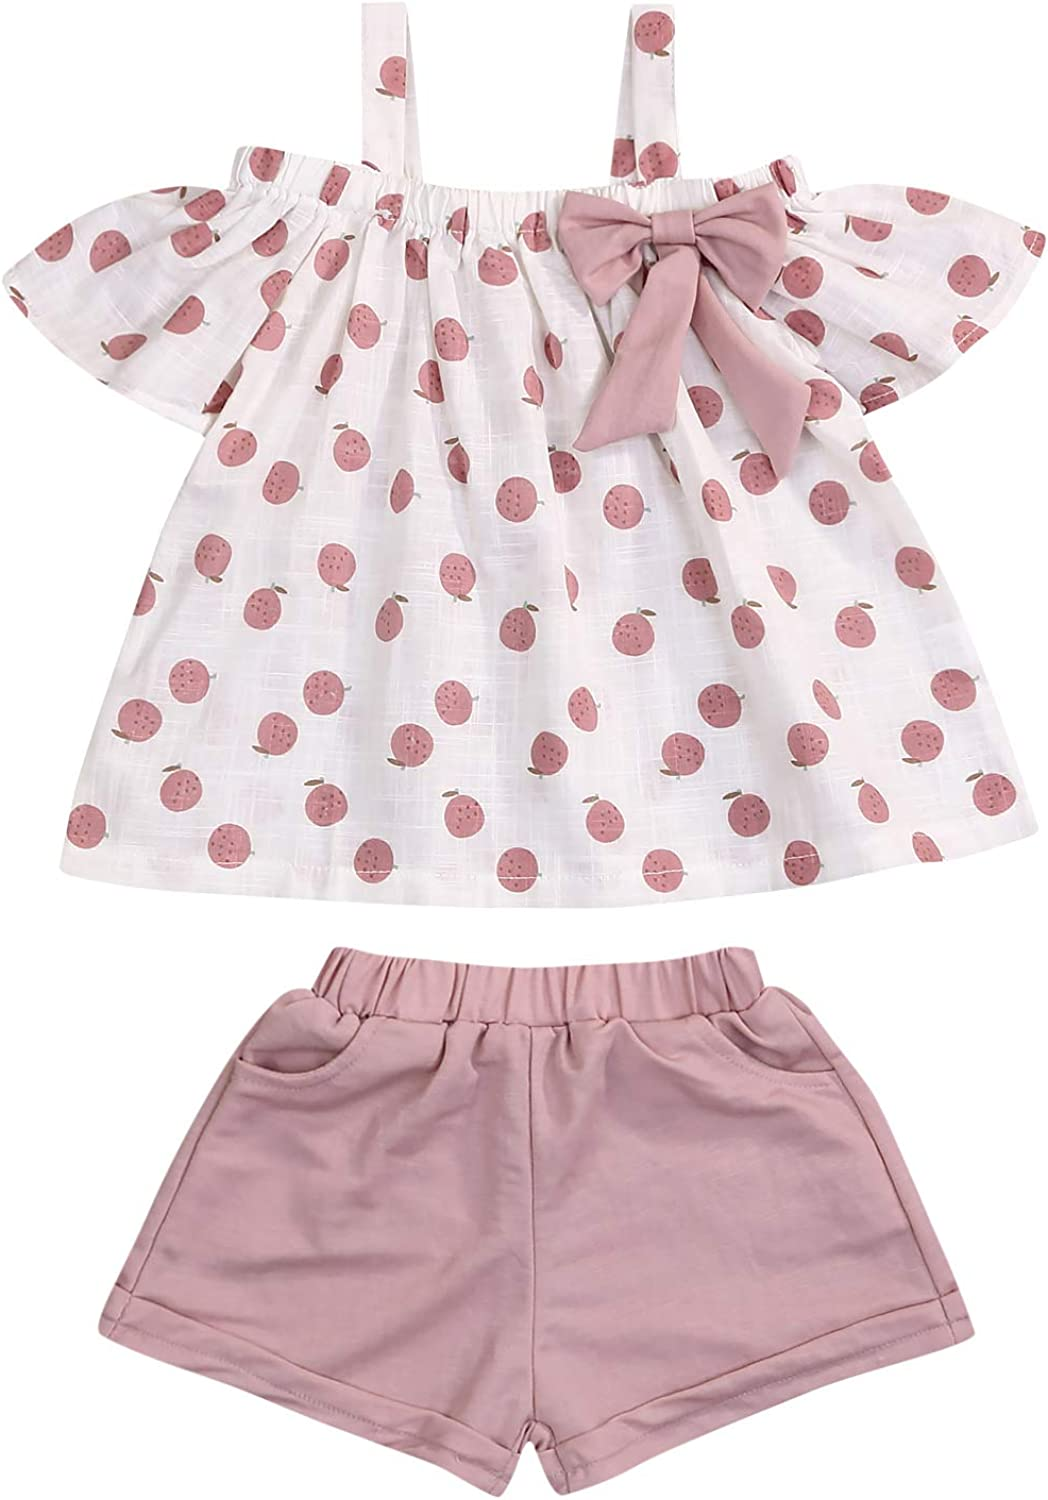 Girls Ruffled Print Top Shirt Floral Pants Shorts Children Outfit Suit 2pcs